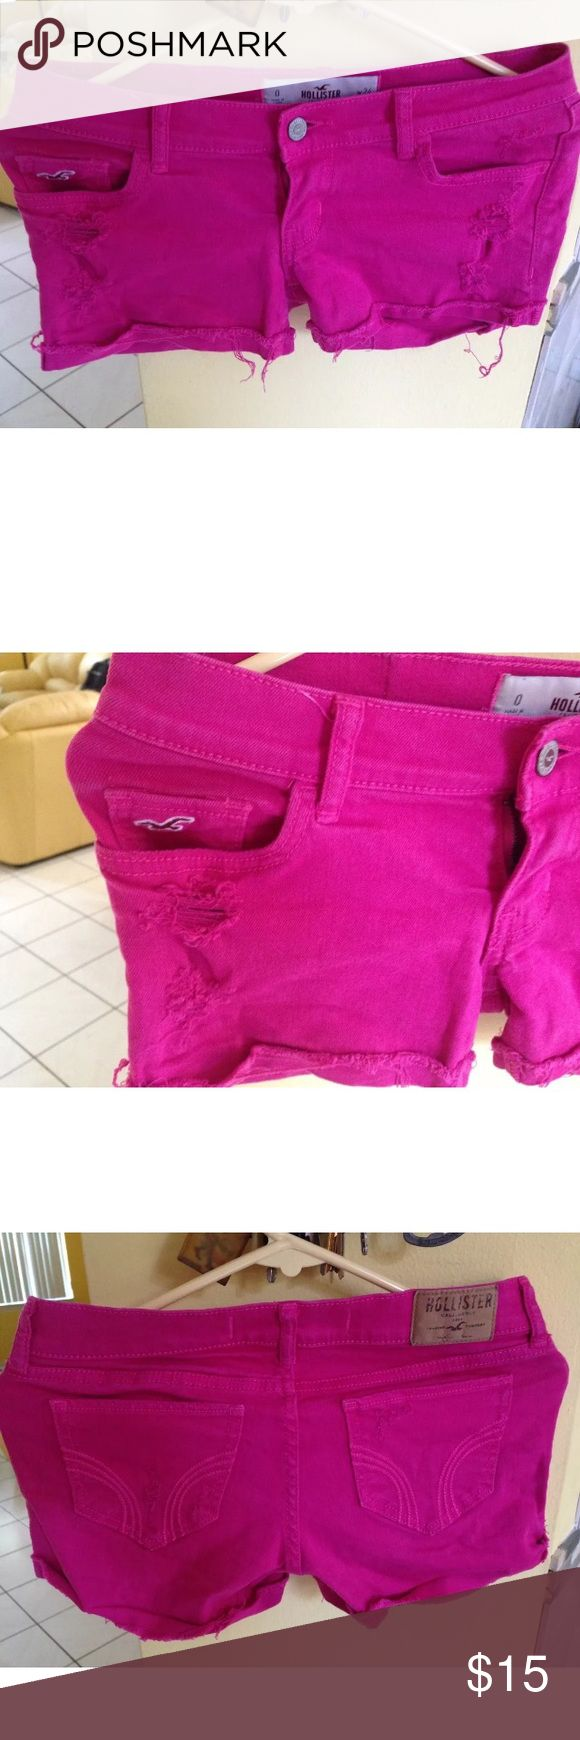 Hollister Denim Daisy Duke distressed shorts This listing for a used Hollister Denim Daisy Duke Shorts, pink,distressed, size 0. Its in excellent used condition. Hollister Shorts Jean Shorts